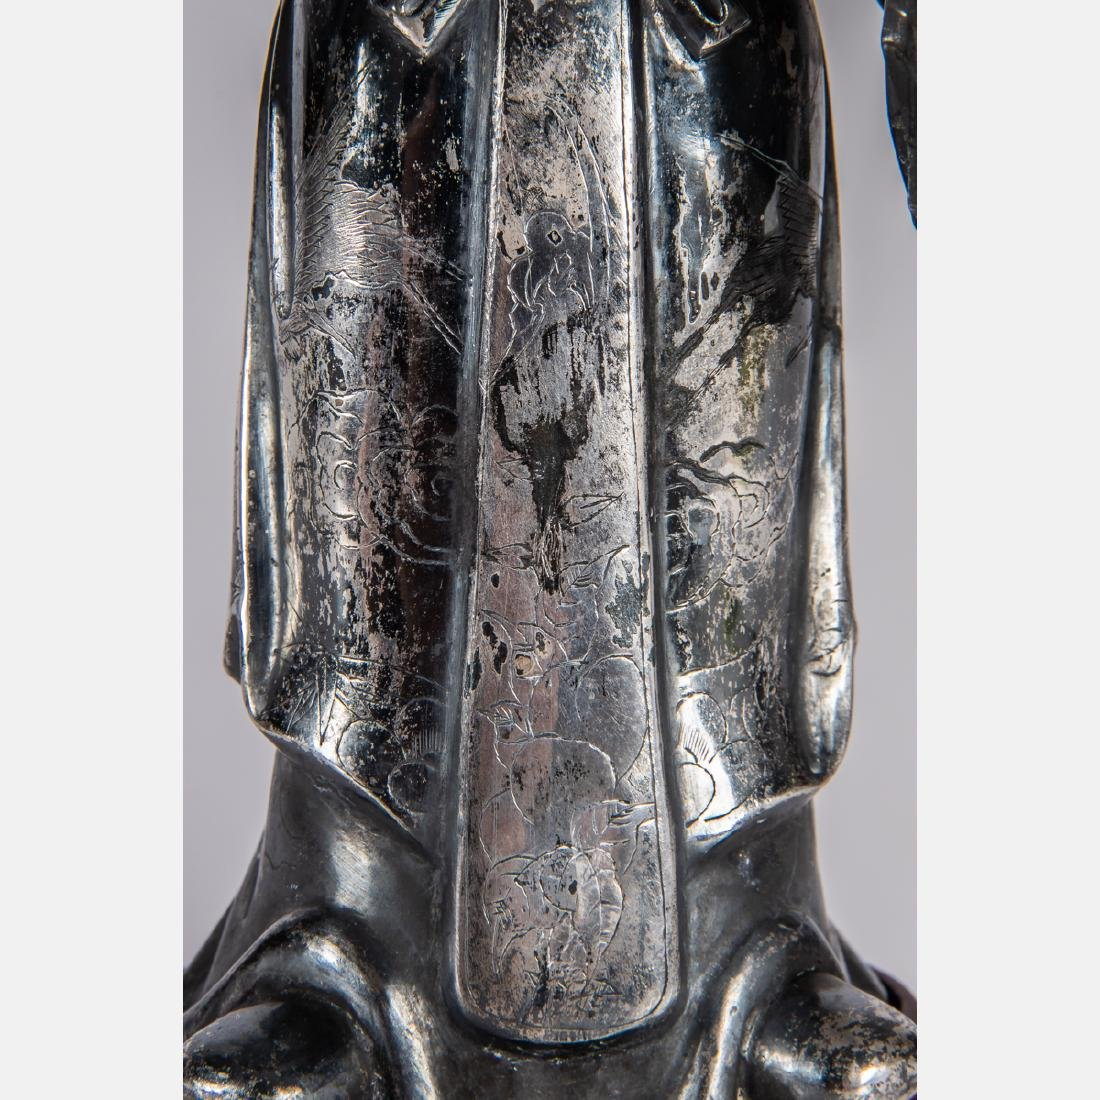 A Chinese Export Silver Figure of Shou Xing, God of - 3